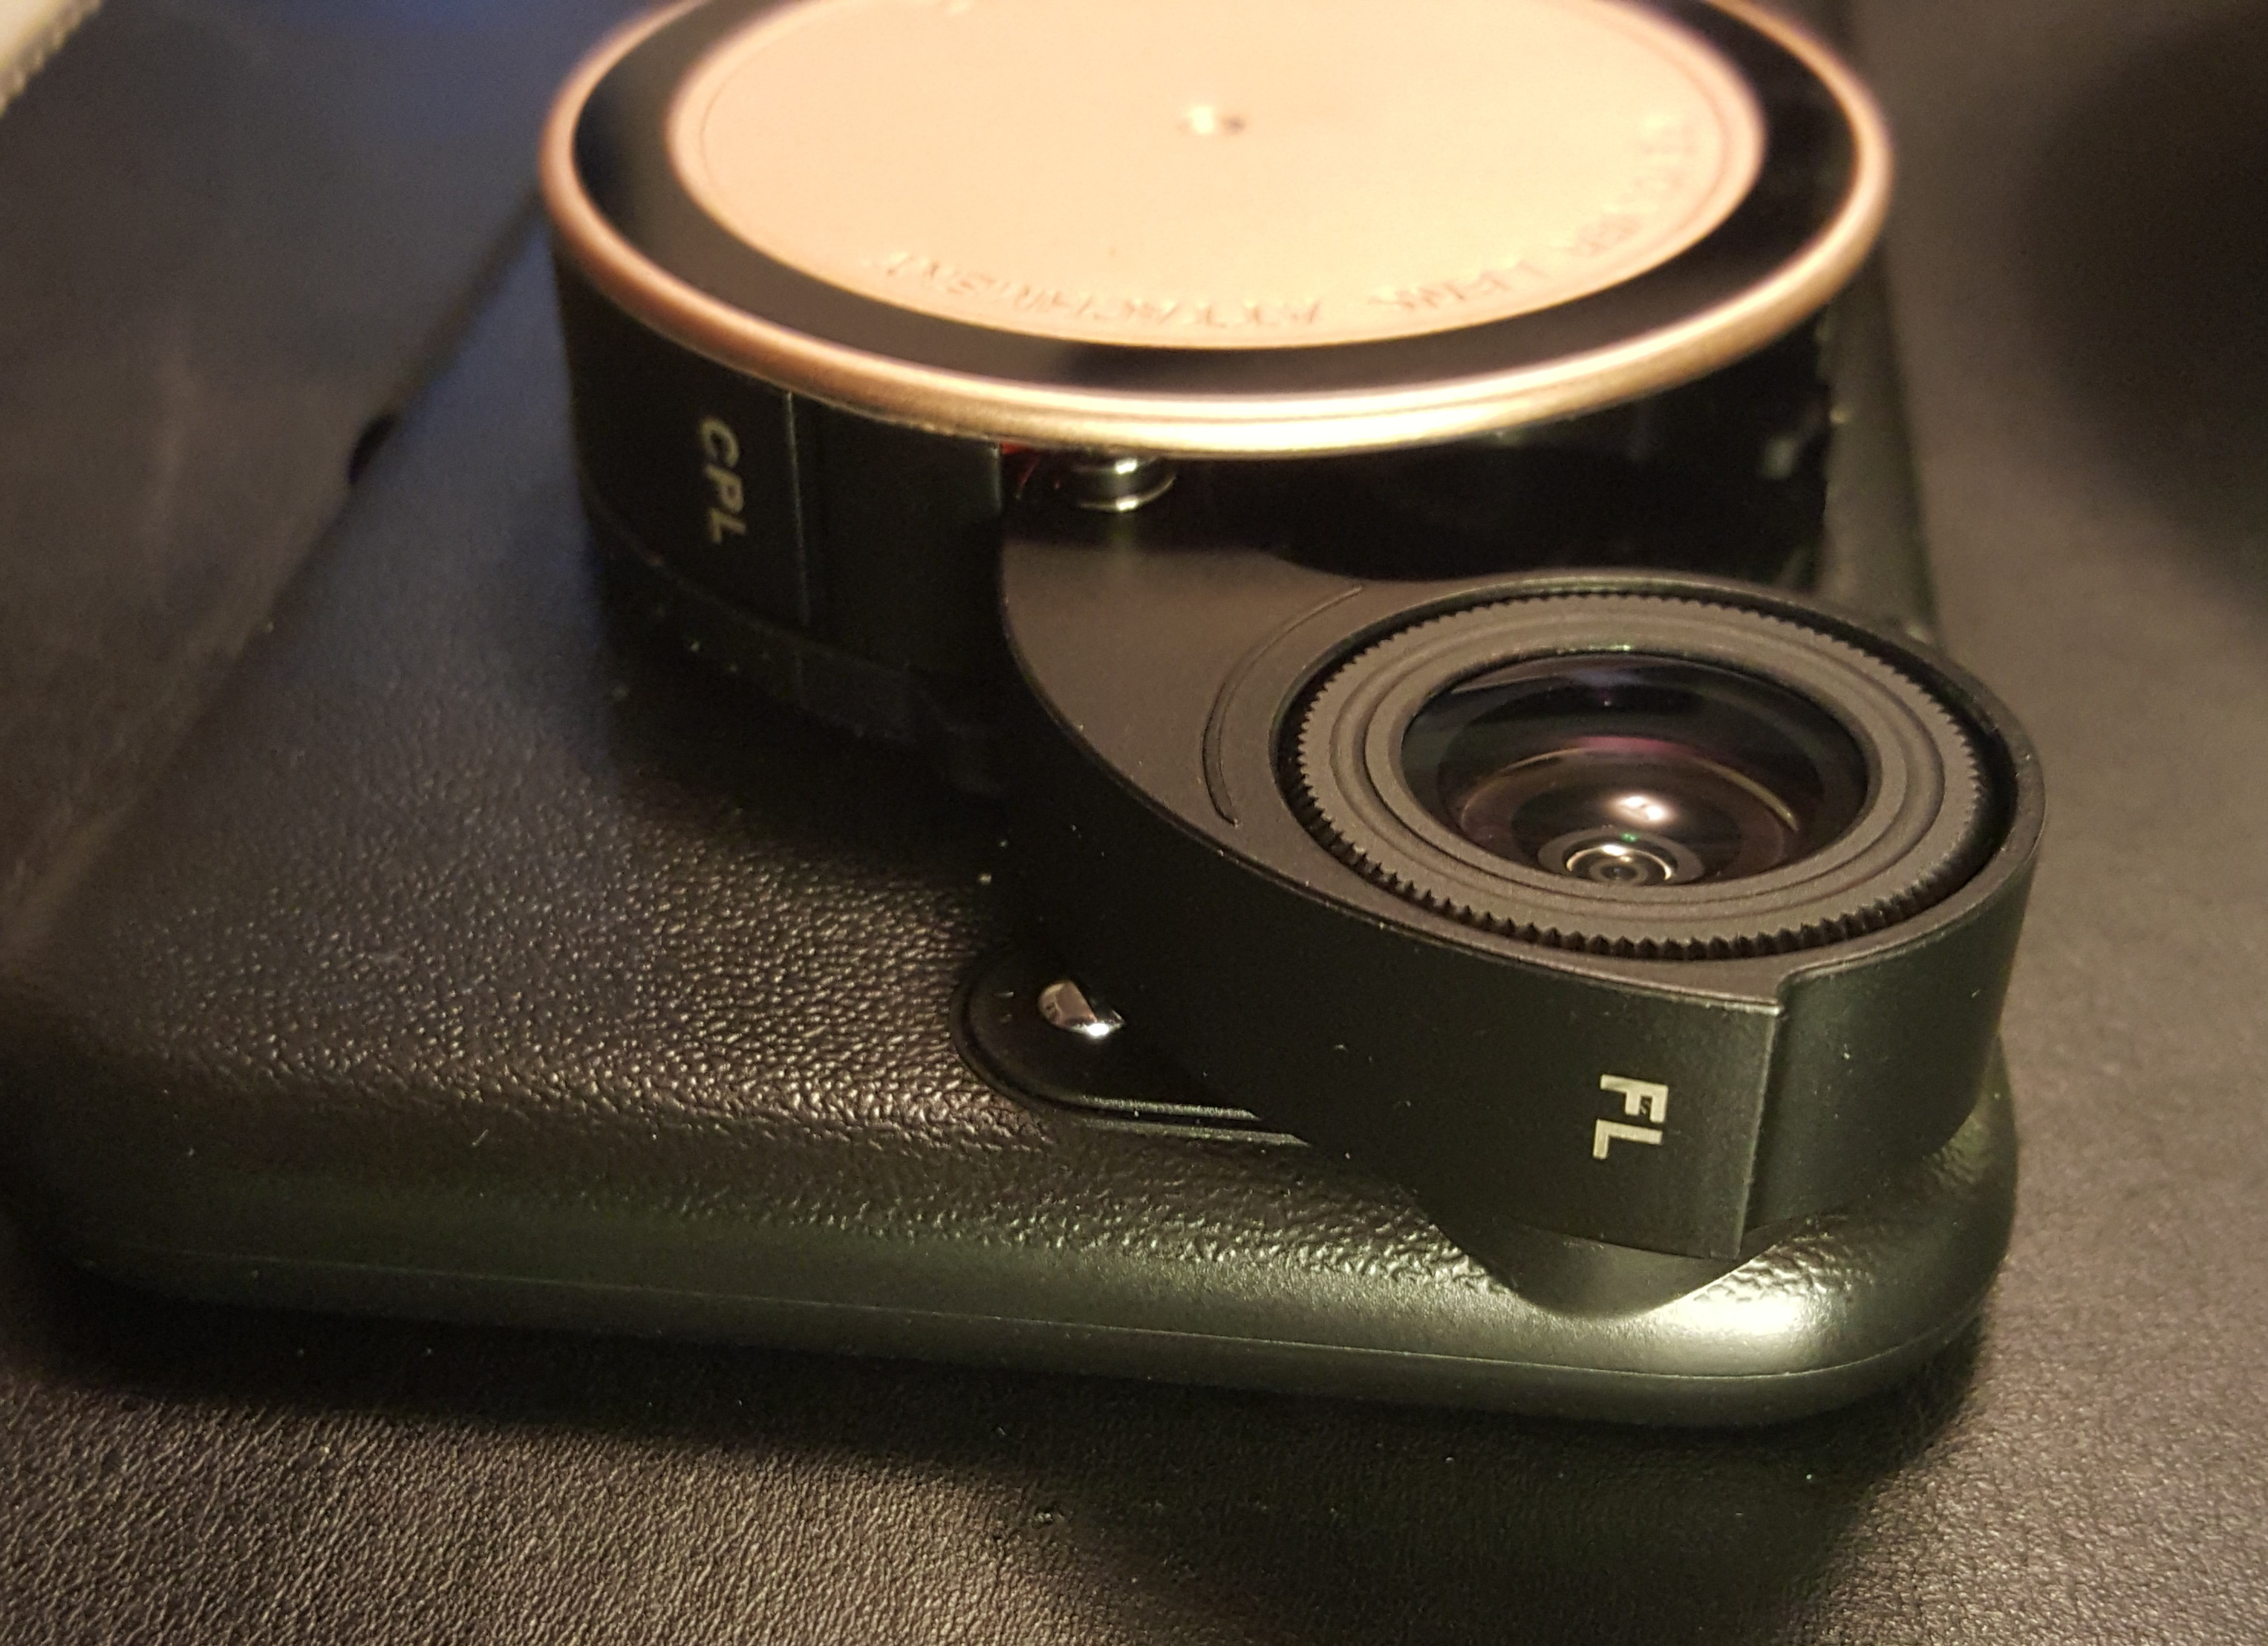 ZTYLUS iPhone 6 Plus with fish-eye lens covering iphone 6 plus lens